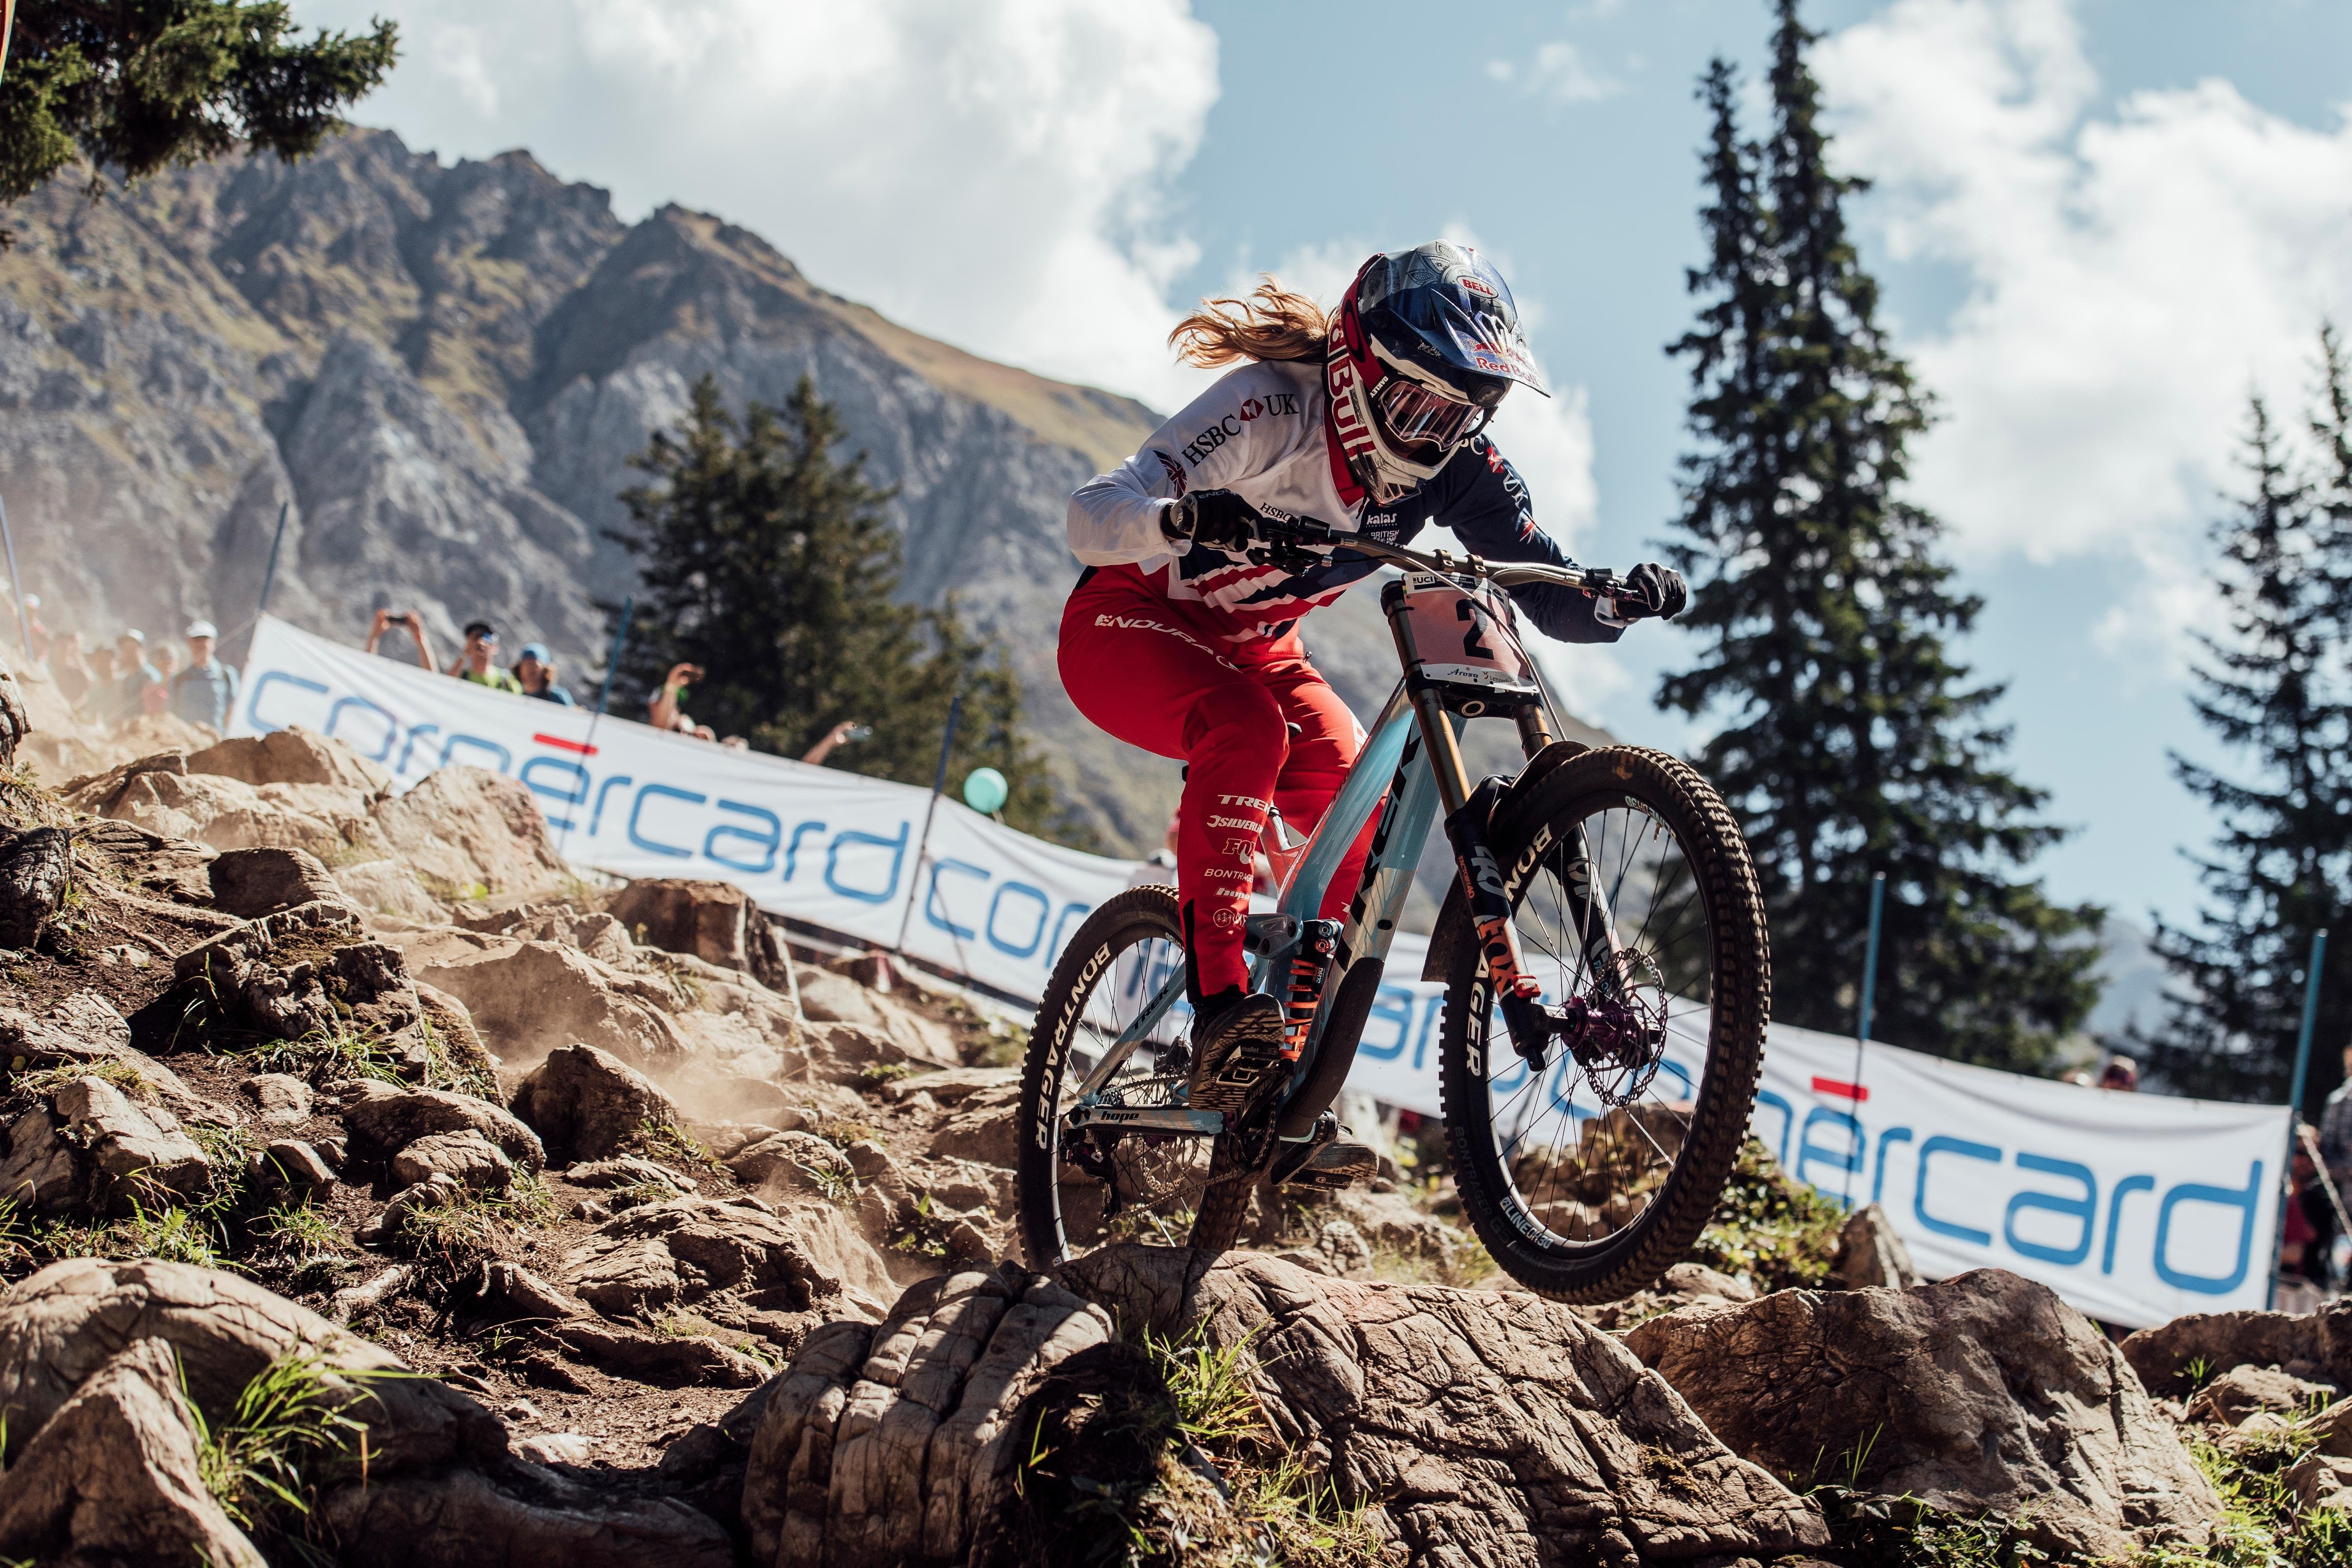 "Calendario 2019 Fc Barcelona Más Caliente Uci Mtb World Cup 2019 All Dh and Xco Venues and Dates Of Calendario 2019 Fc Barcelona Más Recientes Declaraci""n De Red Declaraci""n De Red Document De Référence Du"